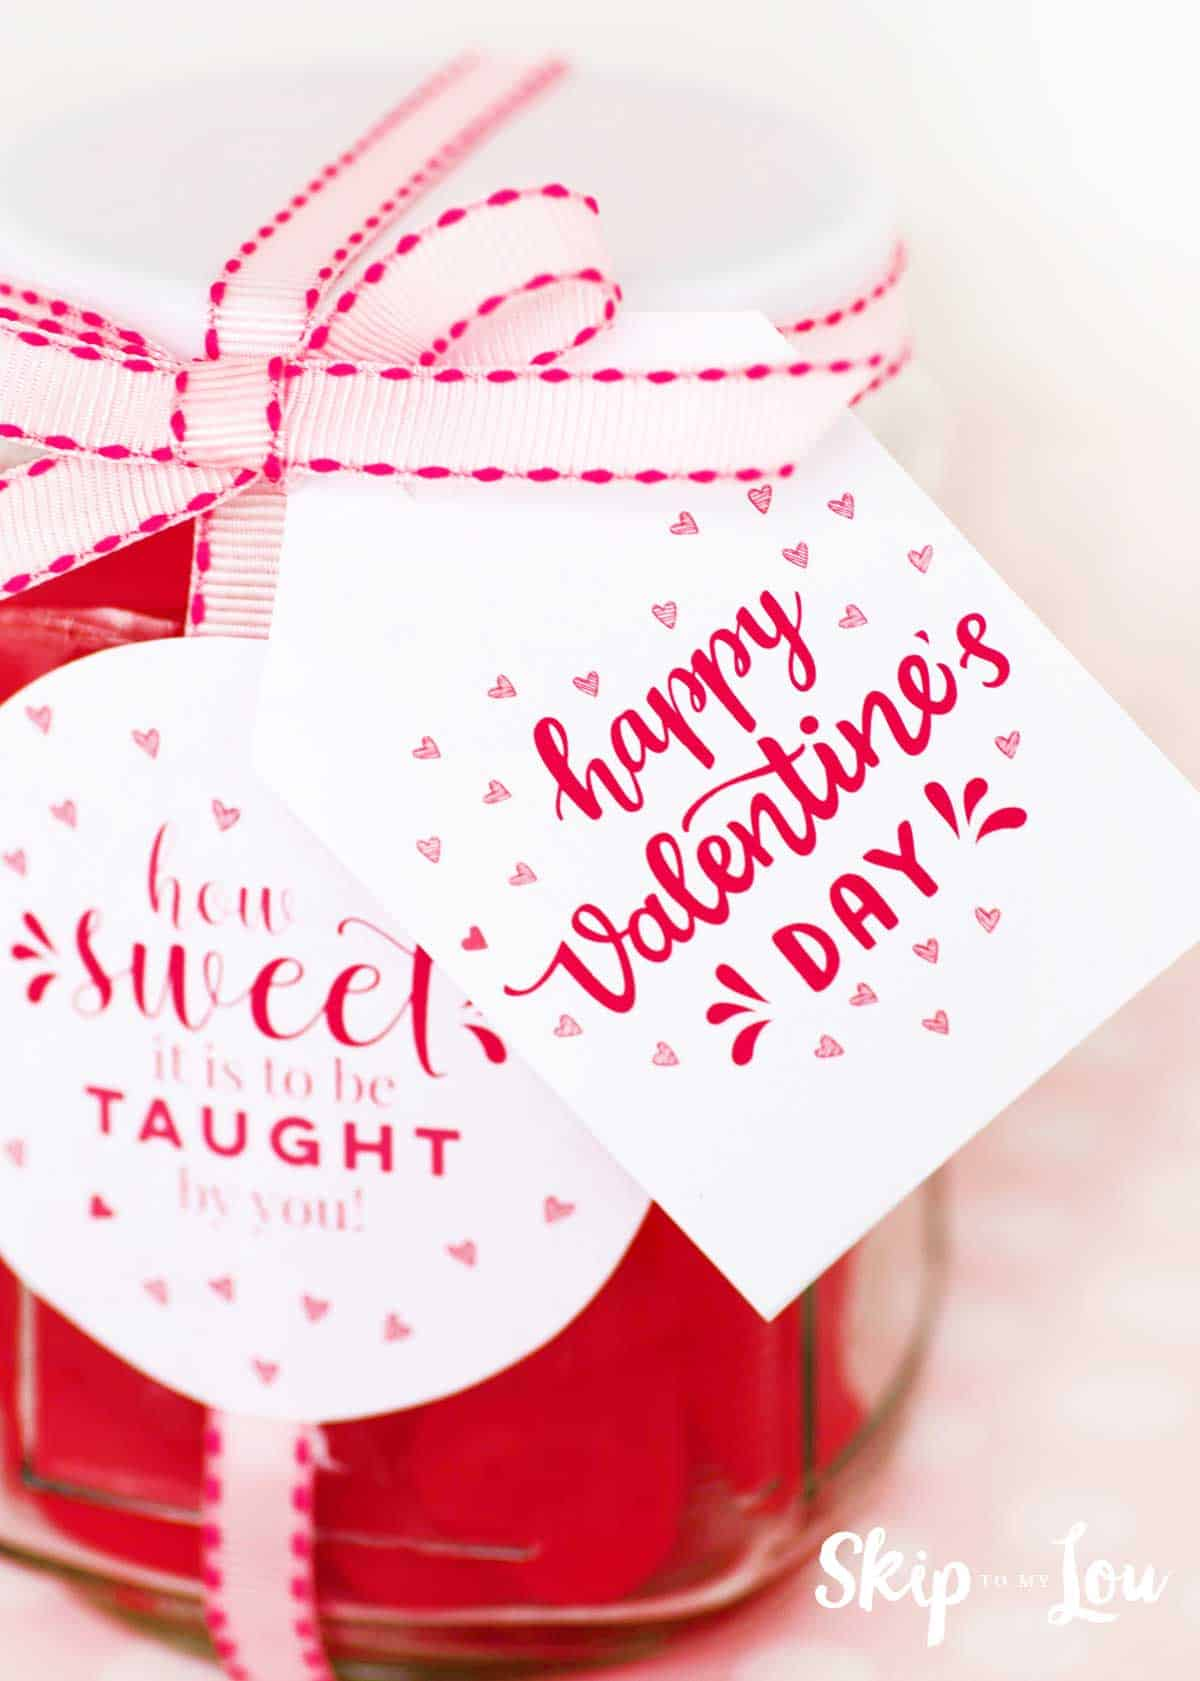 teacher gift with happy valentines day label and how sweet it is to be taught by you label.